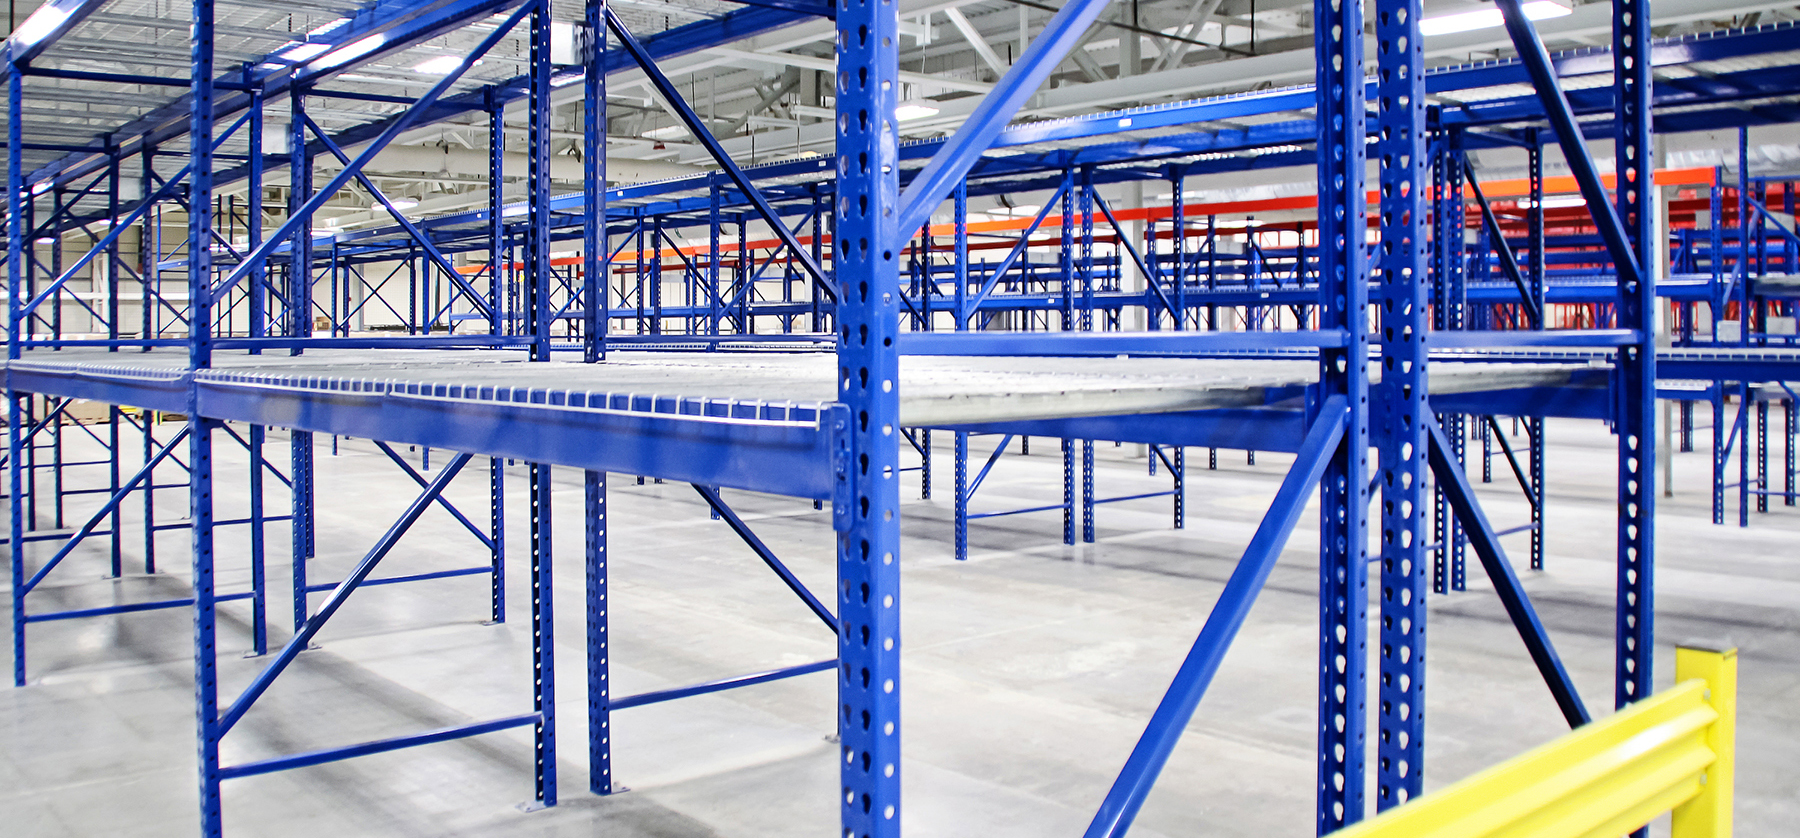 Custom colored galvanized pallet racks with mesh decking in a warehouse